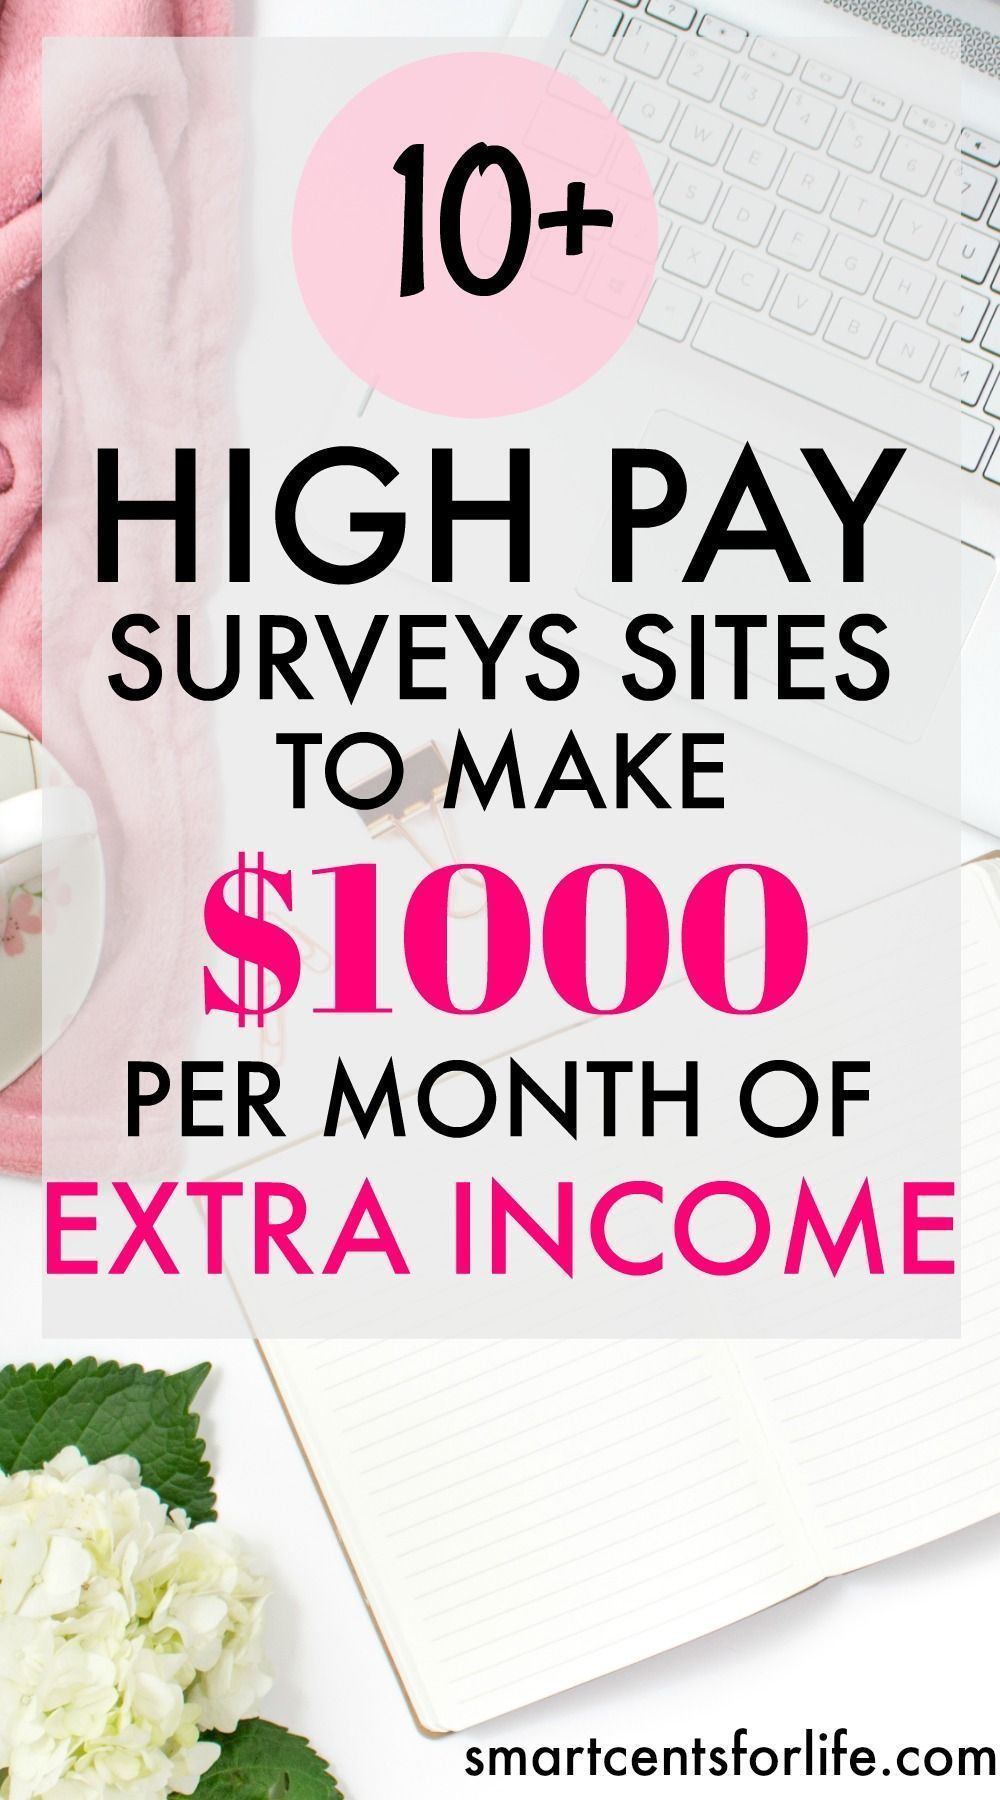 Over 10 high pay survey sites for to to make $1000 per month of ...